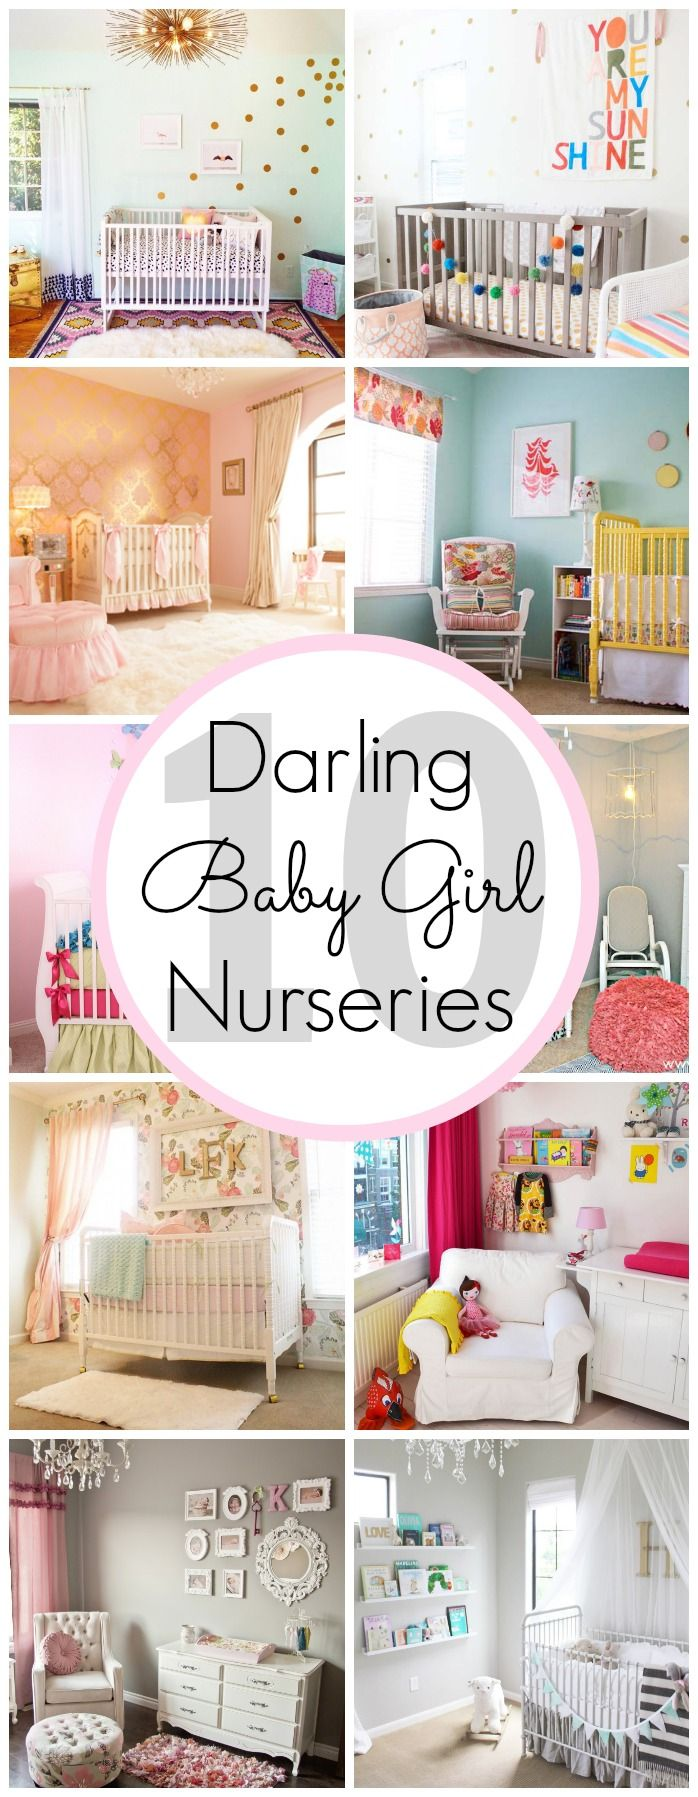 403 best The Nursery images on Pinterest | Baby girls, Baby girl ...